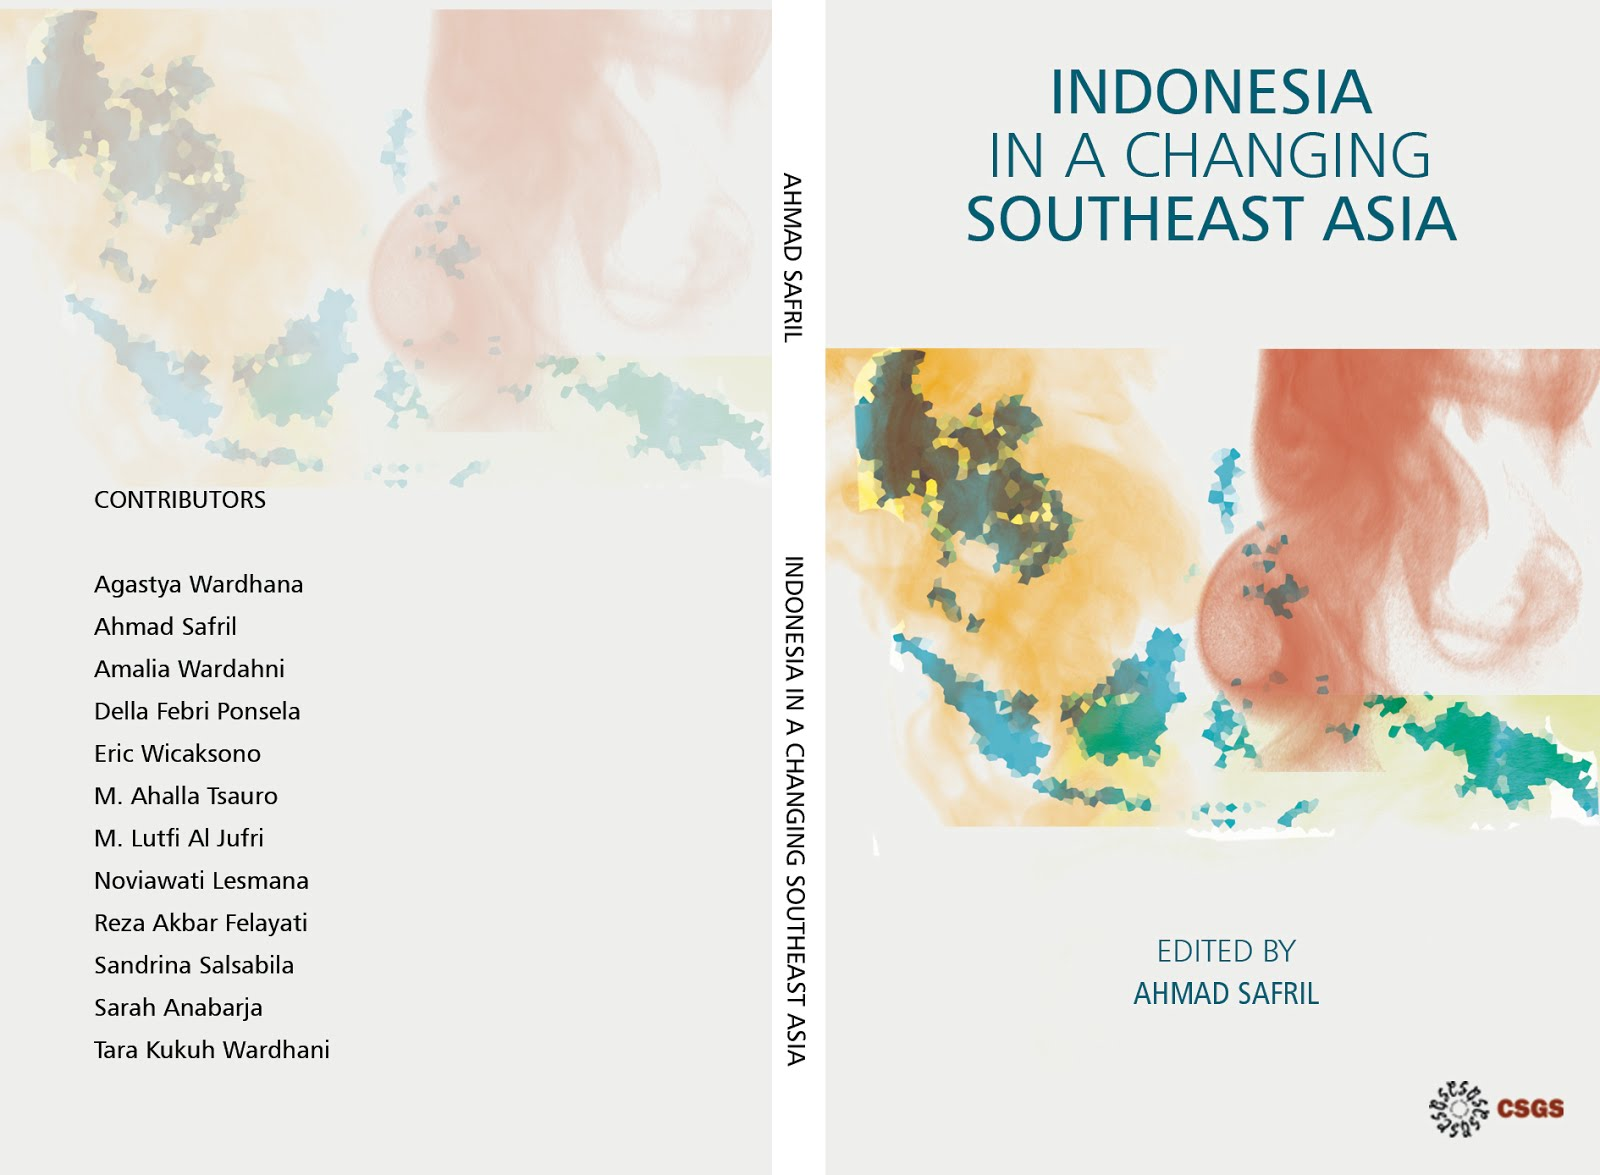 Indonesia in a Changing Southeast Asia